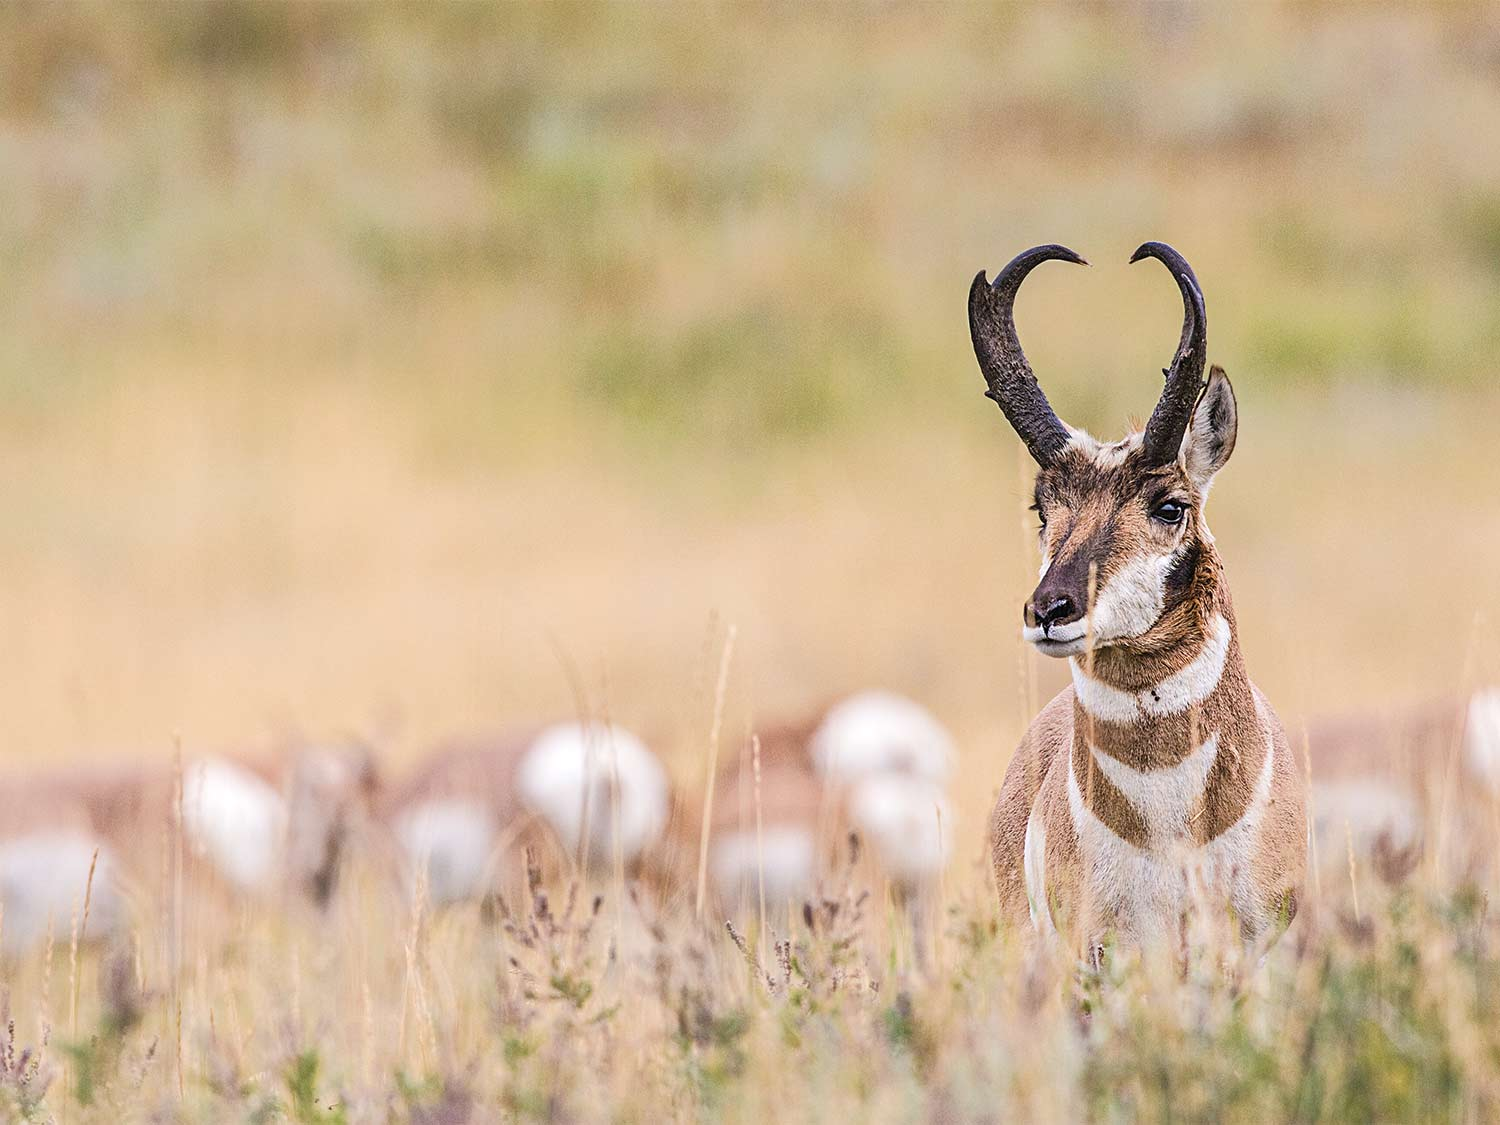 a mature antelope buck protecting does in a field.